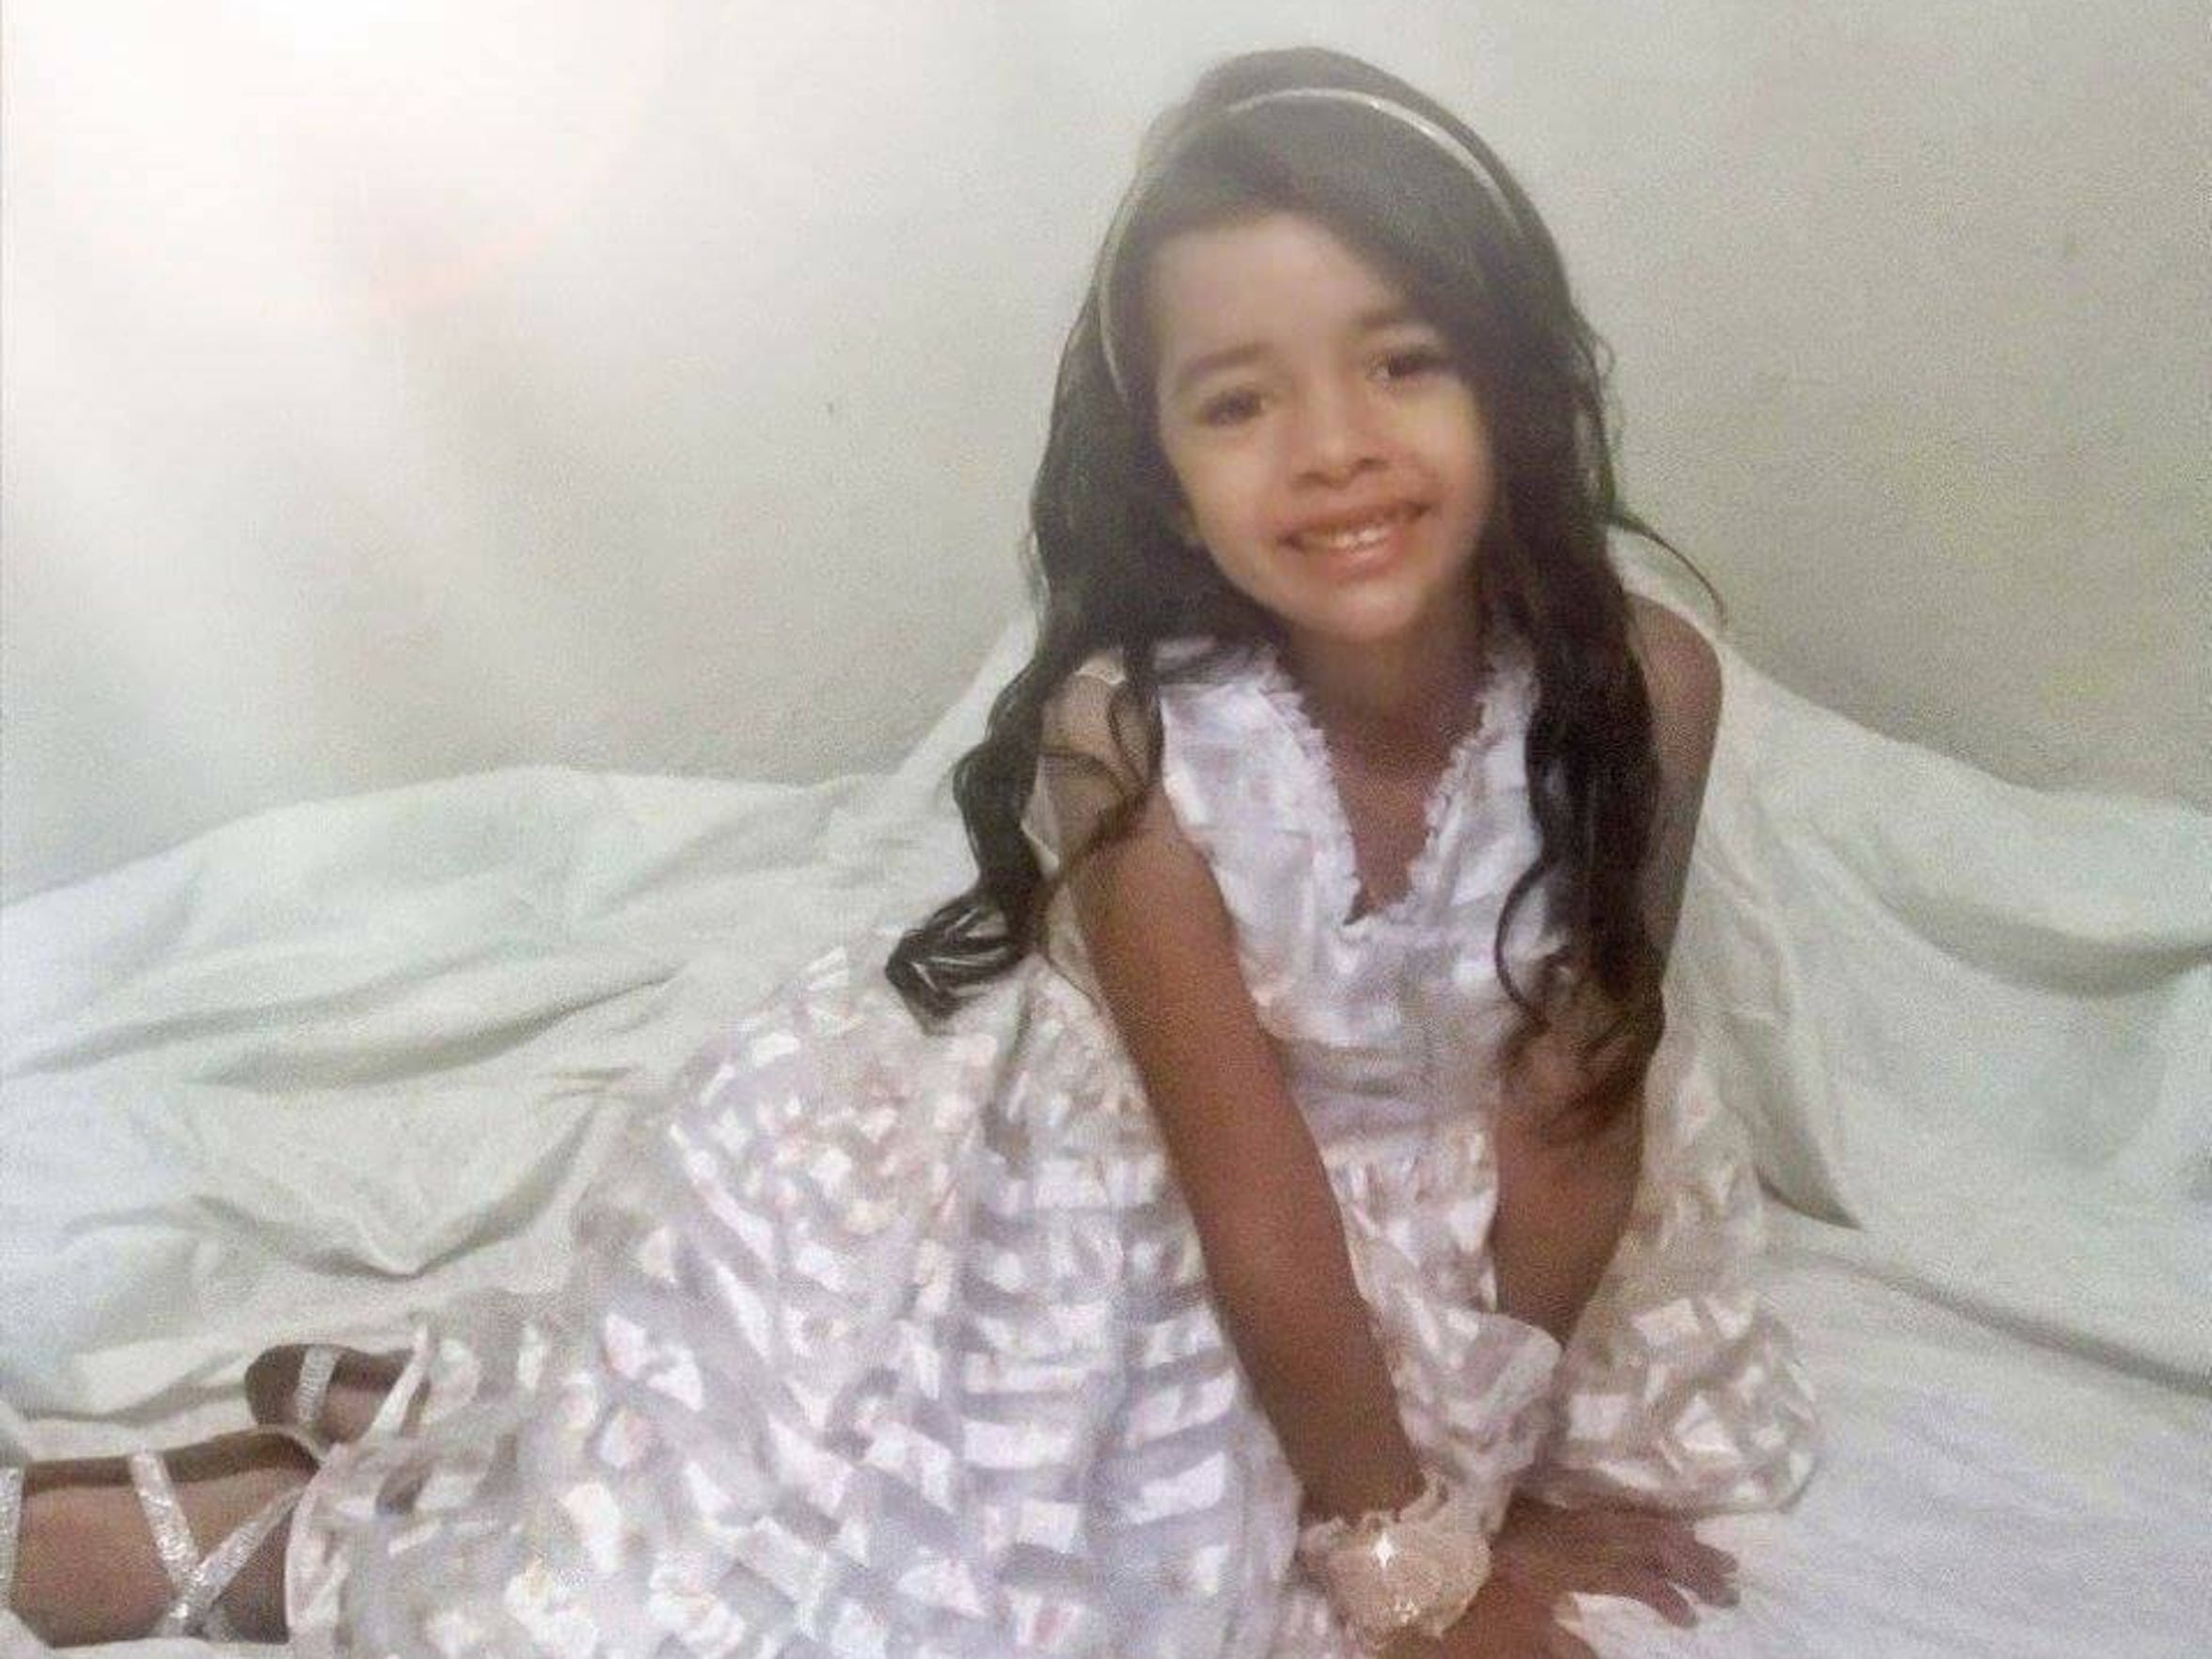 """Alisson Ximena Valencia Madrid, 6, was heard pleading to a Border Patrol agent to allow her to call her aunt in an audio leaked to ProPublica. Alison """"would have been lost in the system"""" if she had not memorized her aunt's phone number, her attorney said."""